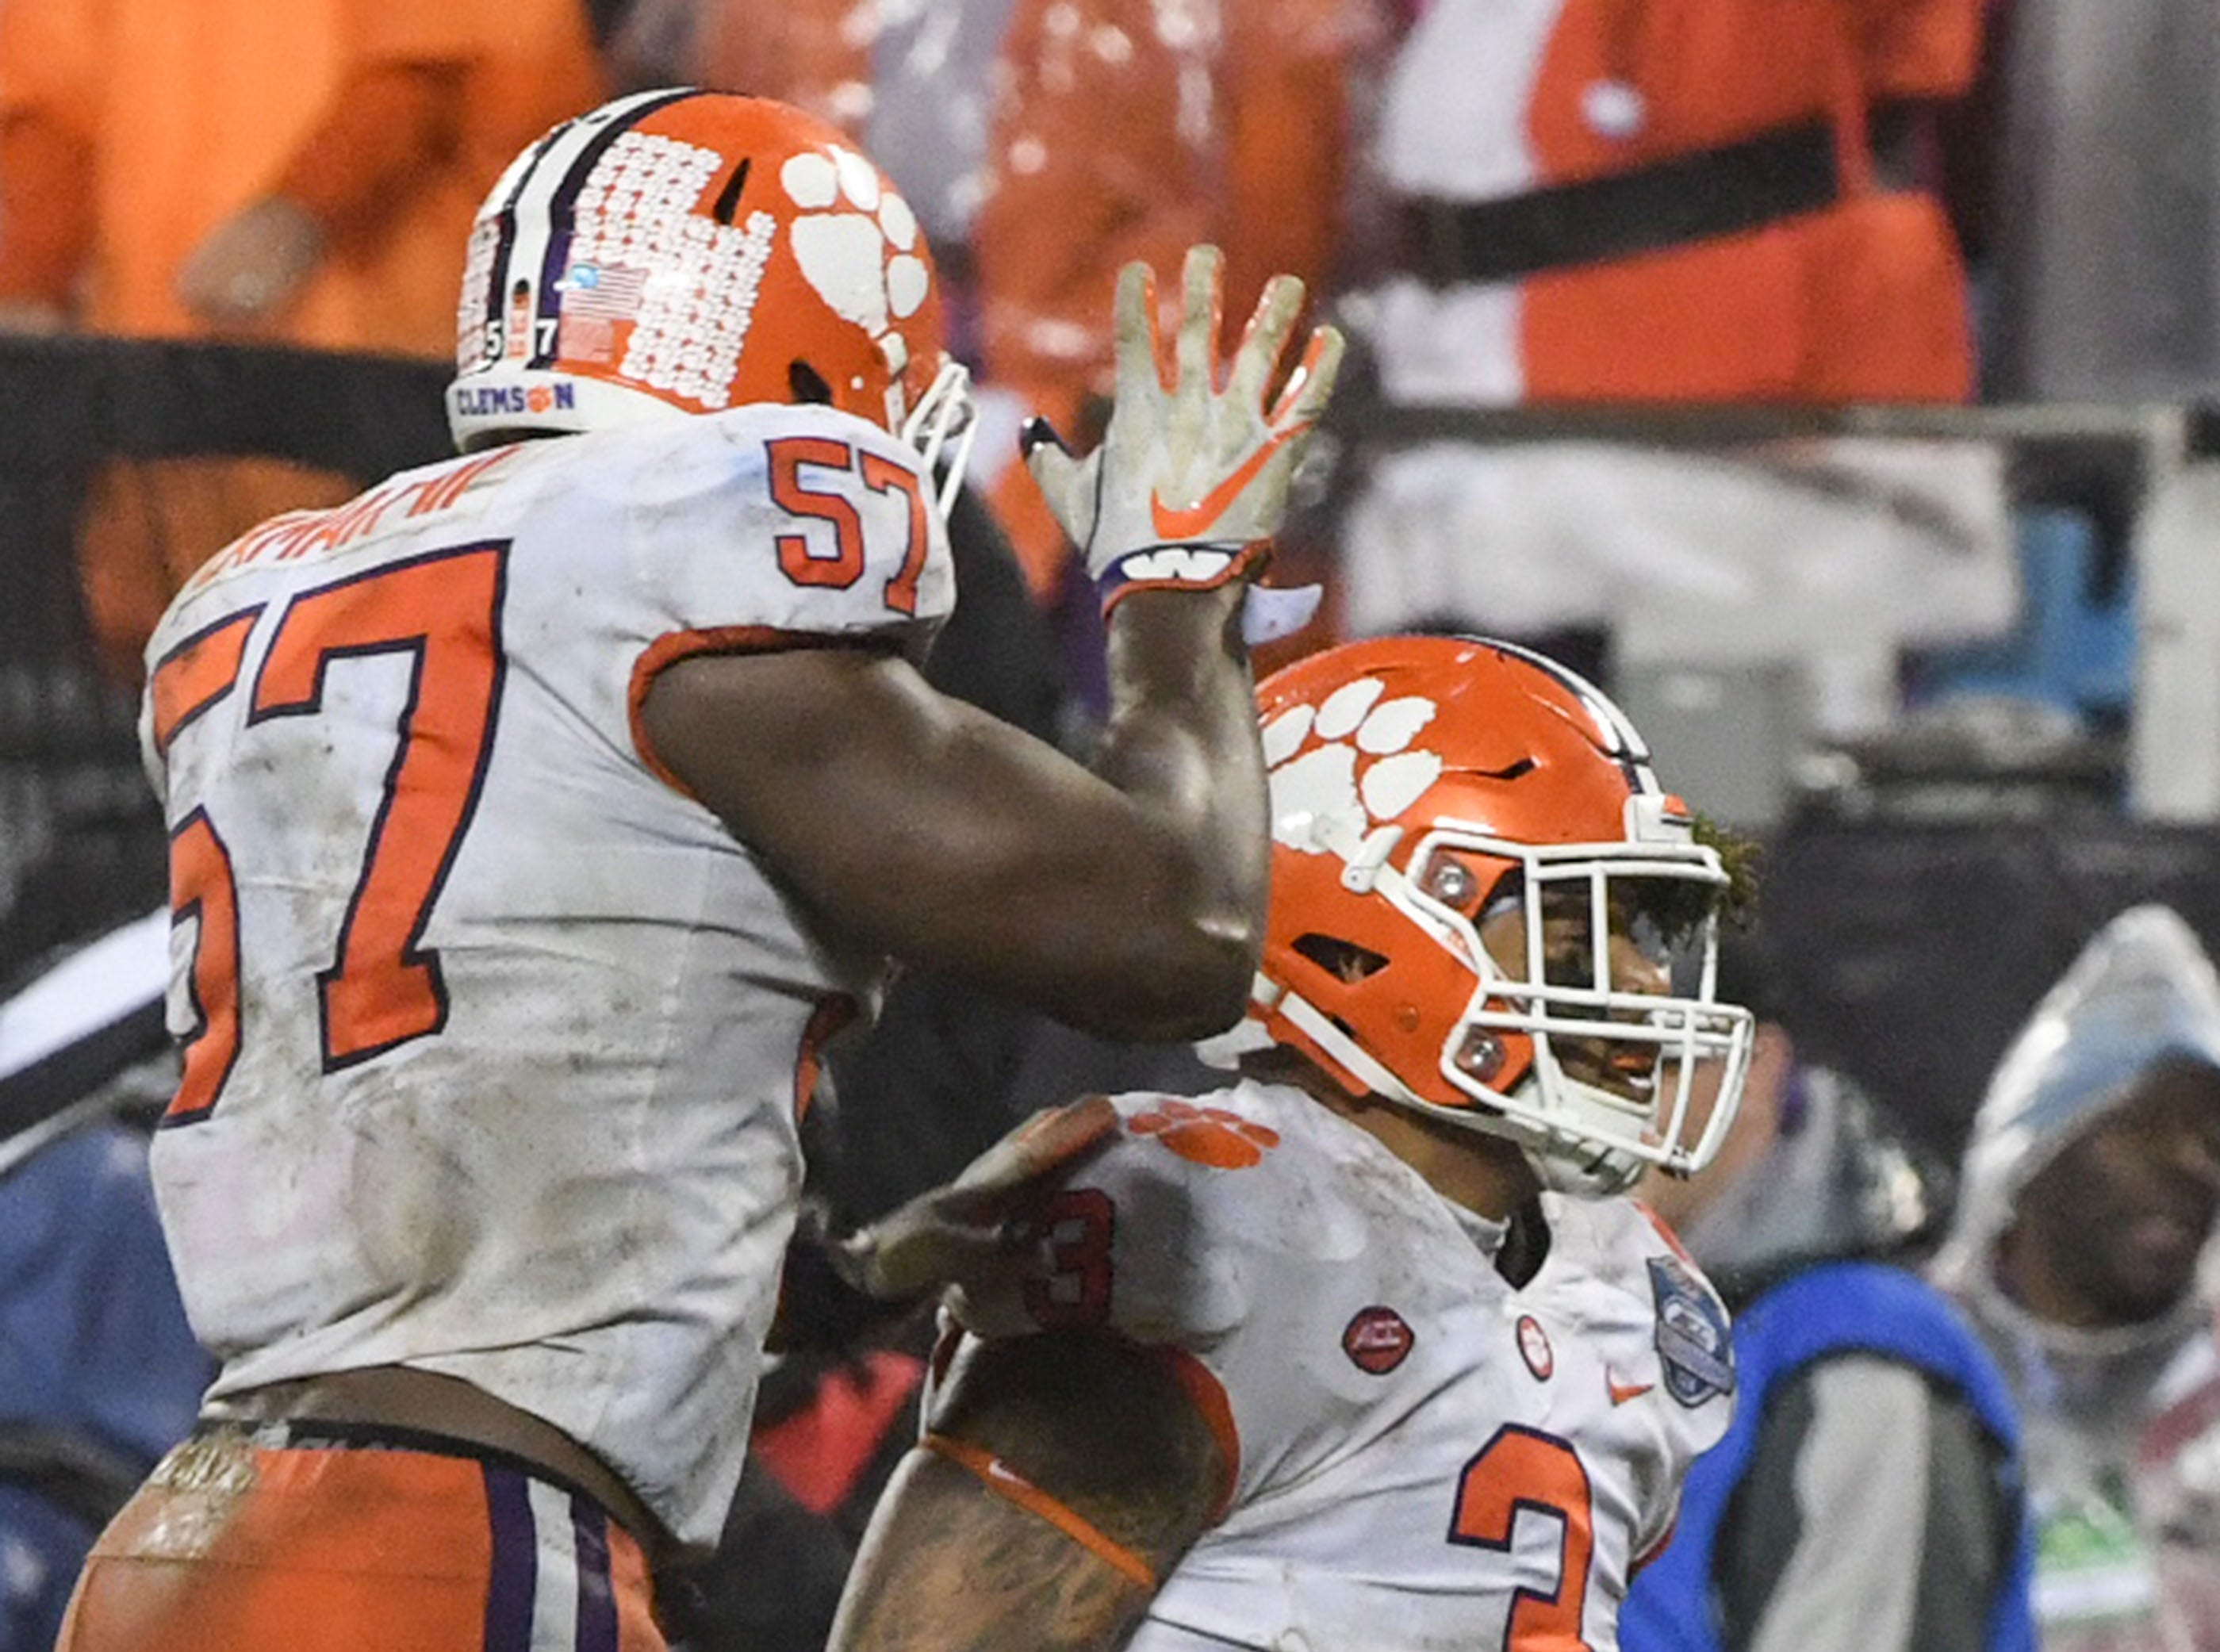 Clemson linebacker Tre Lamar (57) congratulates defensive lineman Xavier Thomas (3) on his tackle during the third quarter of the Dr. Pepper ACC football championship at Bank of America Stadium in Charlotte, N.C. on Saturday, December 1, 2018.